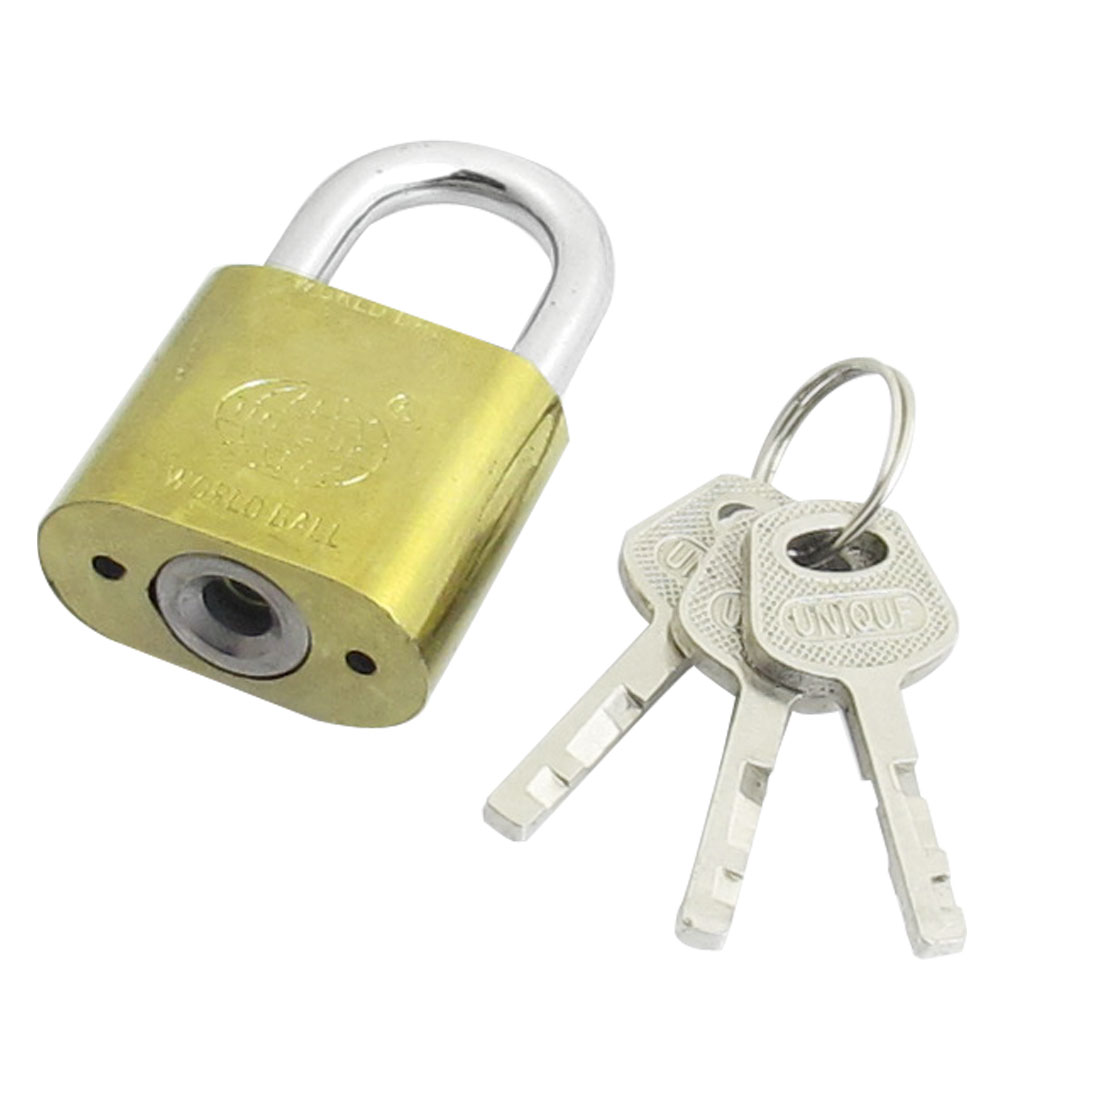 Cabinet Door Gold Tone Metal Security Padlock 30mm w 3 Keys